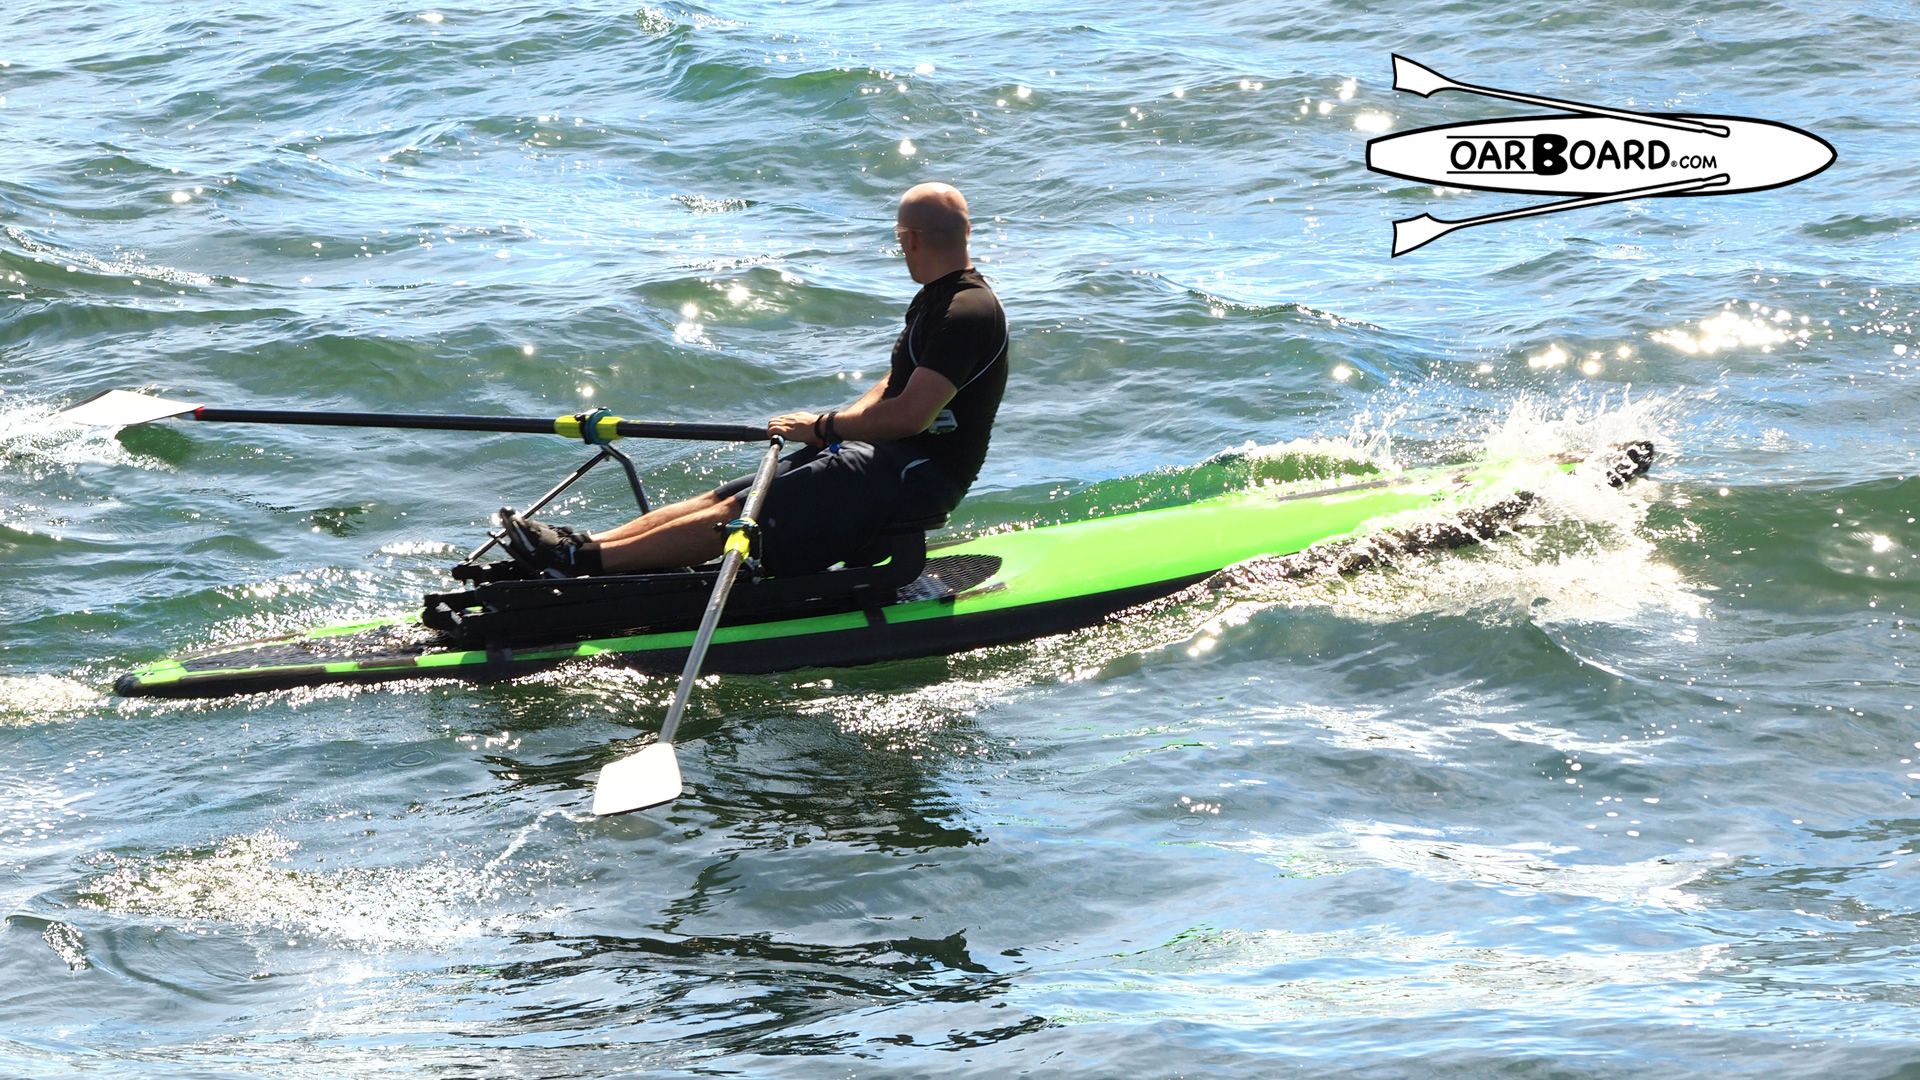 Oar-Board-Adventure-Row-SUP-13-4-Combo-Whitehall-Rowing-and-Sail